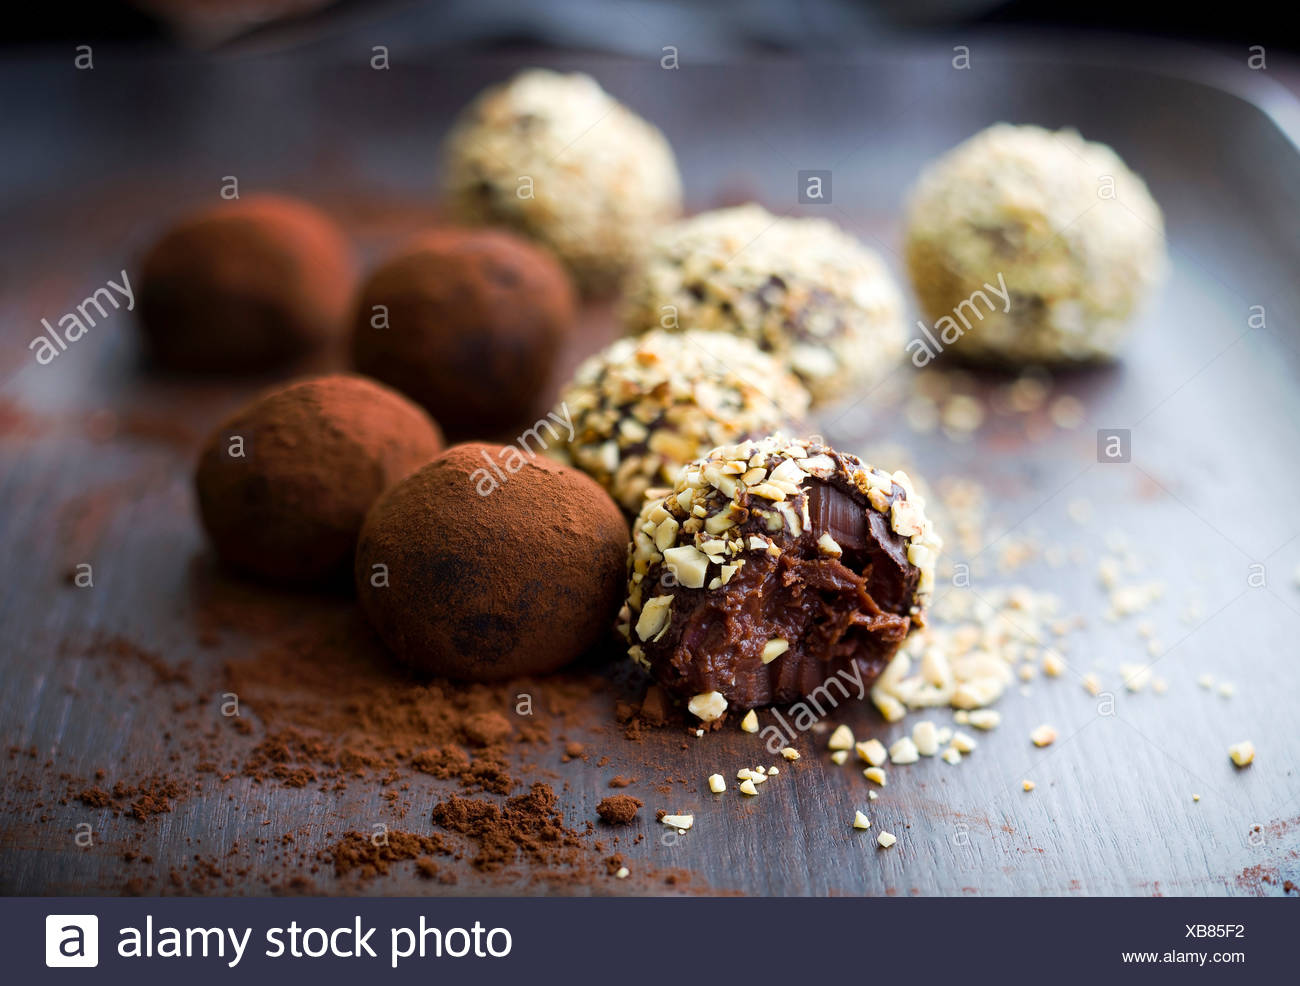 Different flavored chocolate truffles - Stock Image